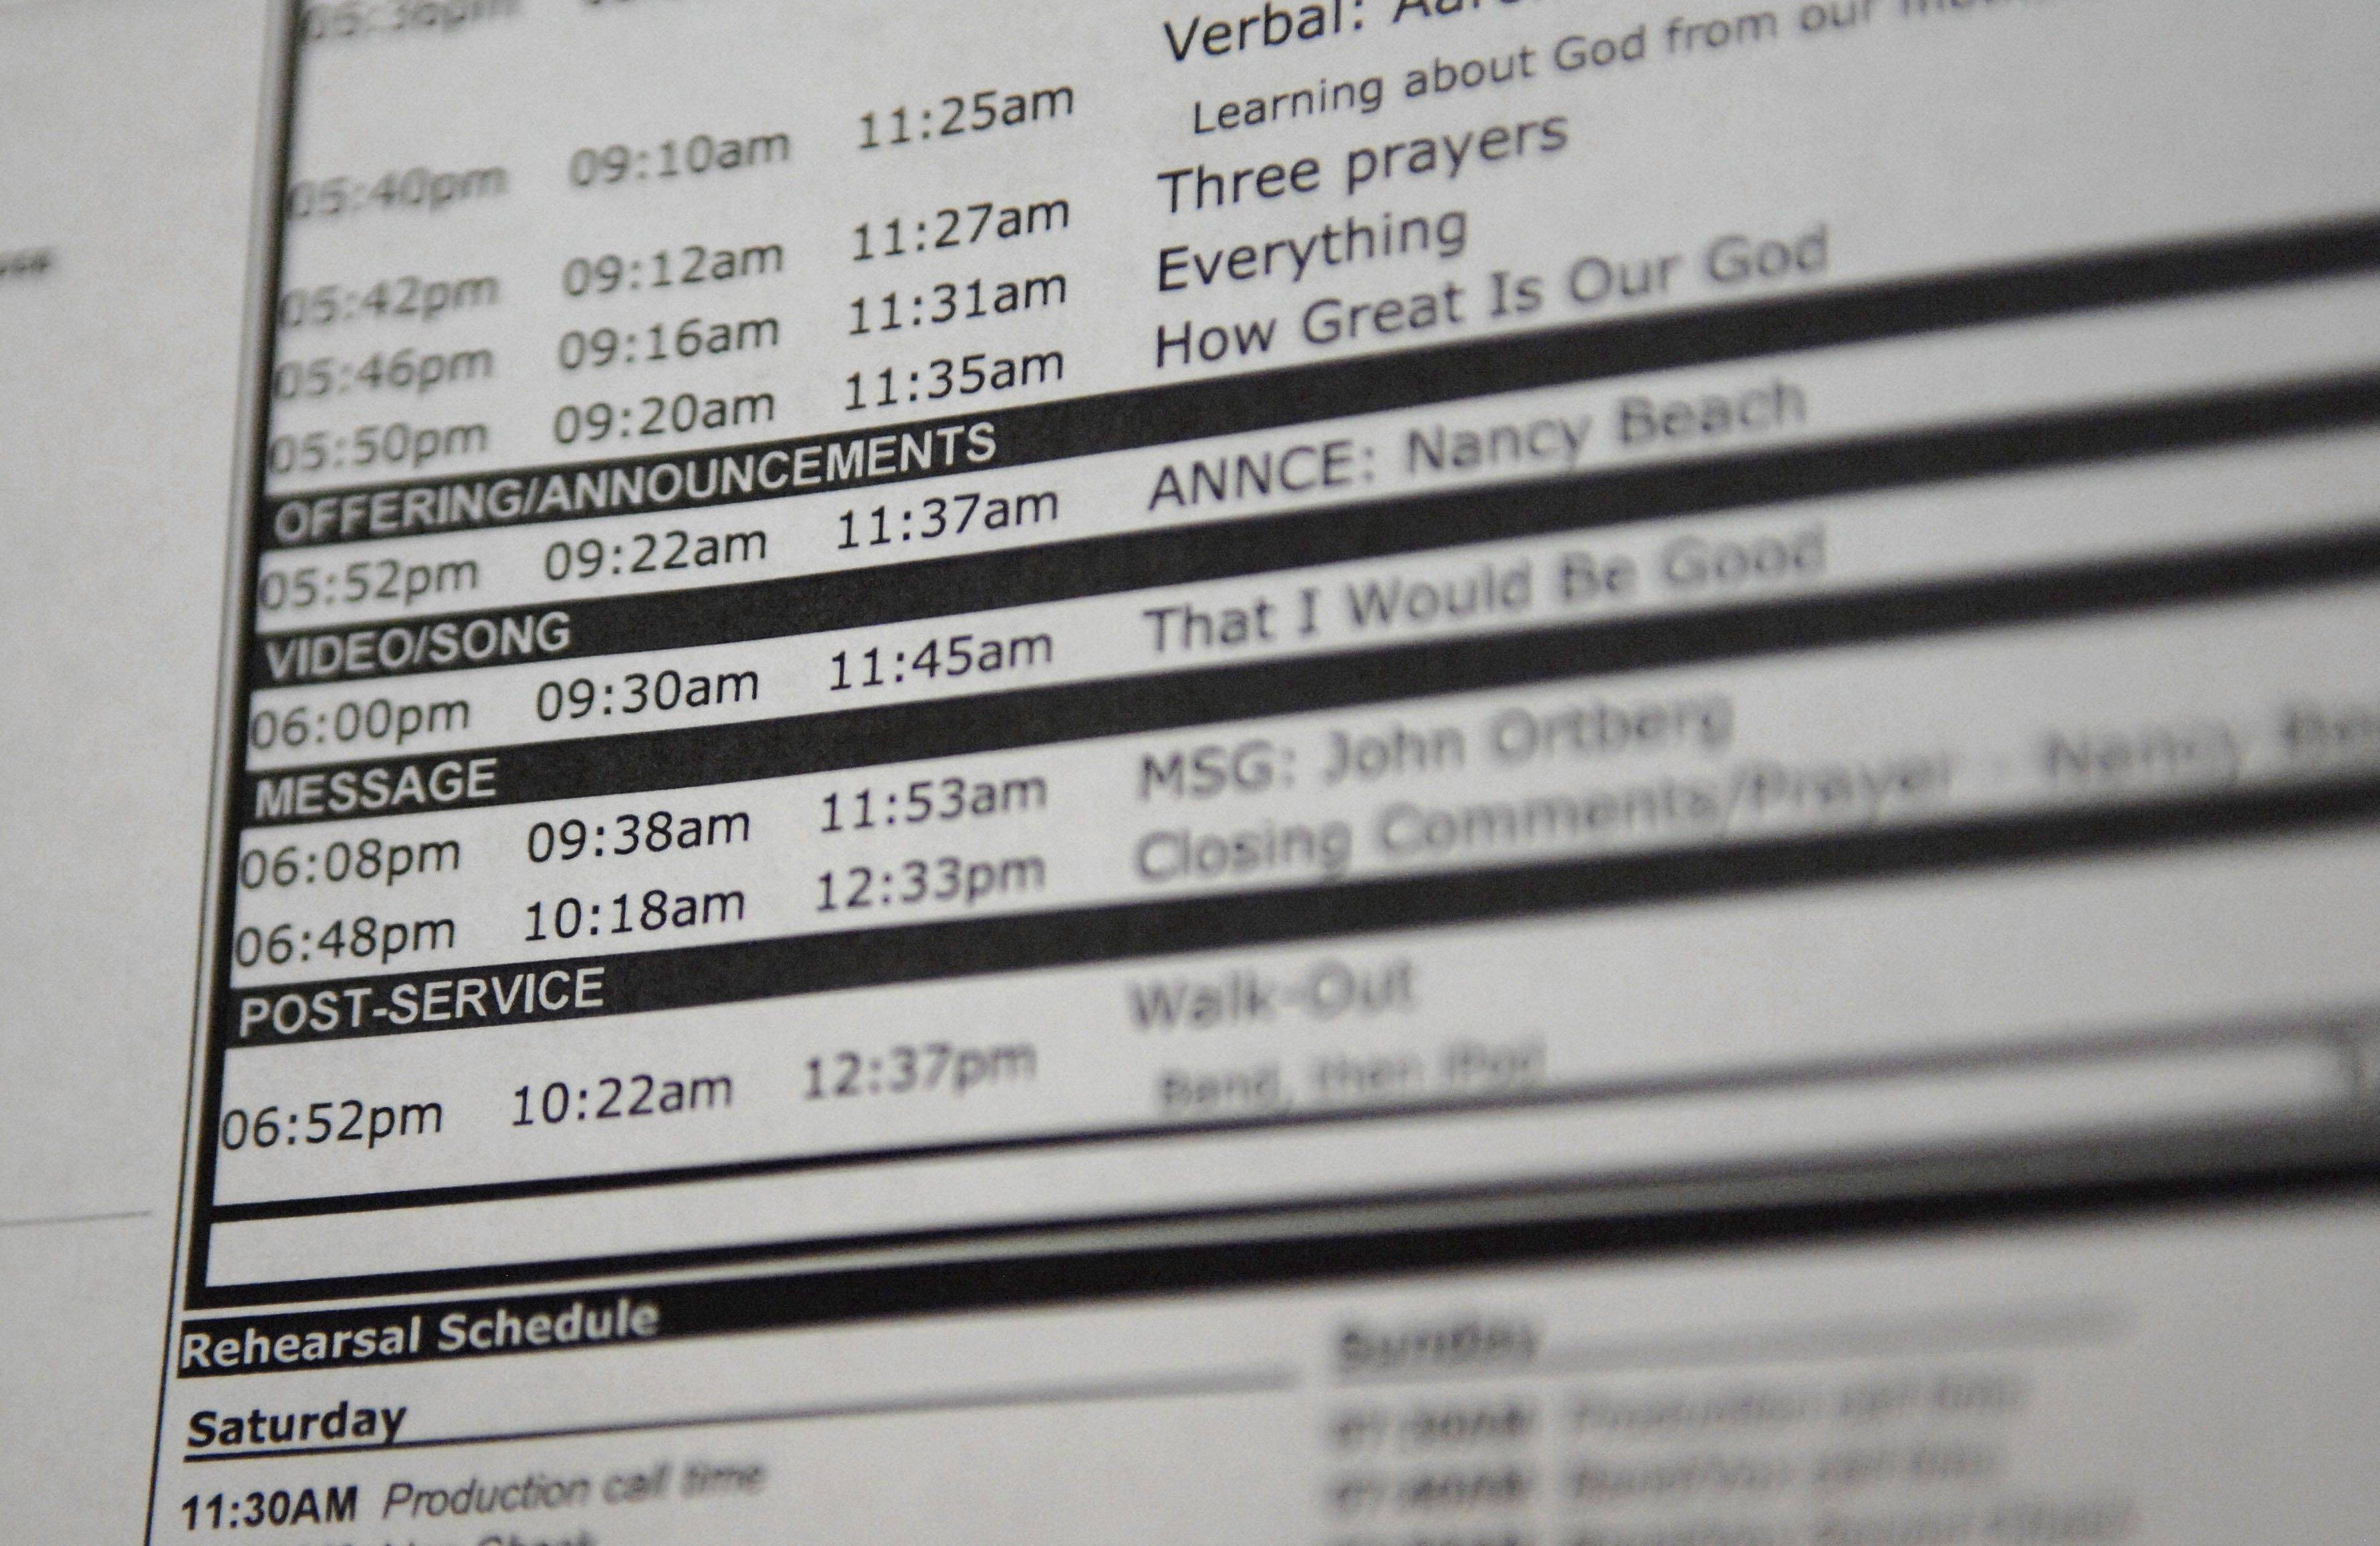 A detailed and jam-packed schedule for a Willow Creek service in South Barrington.